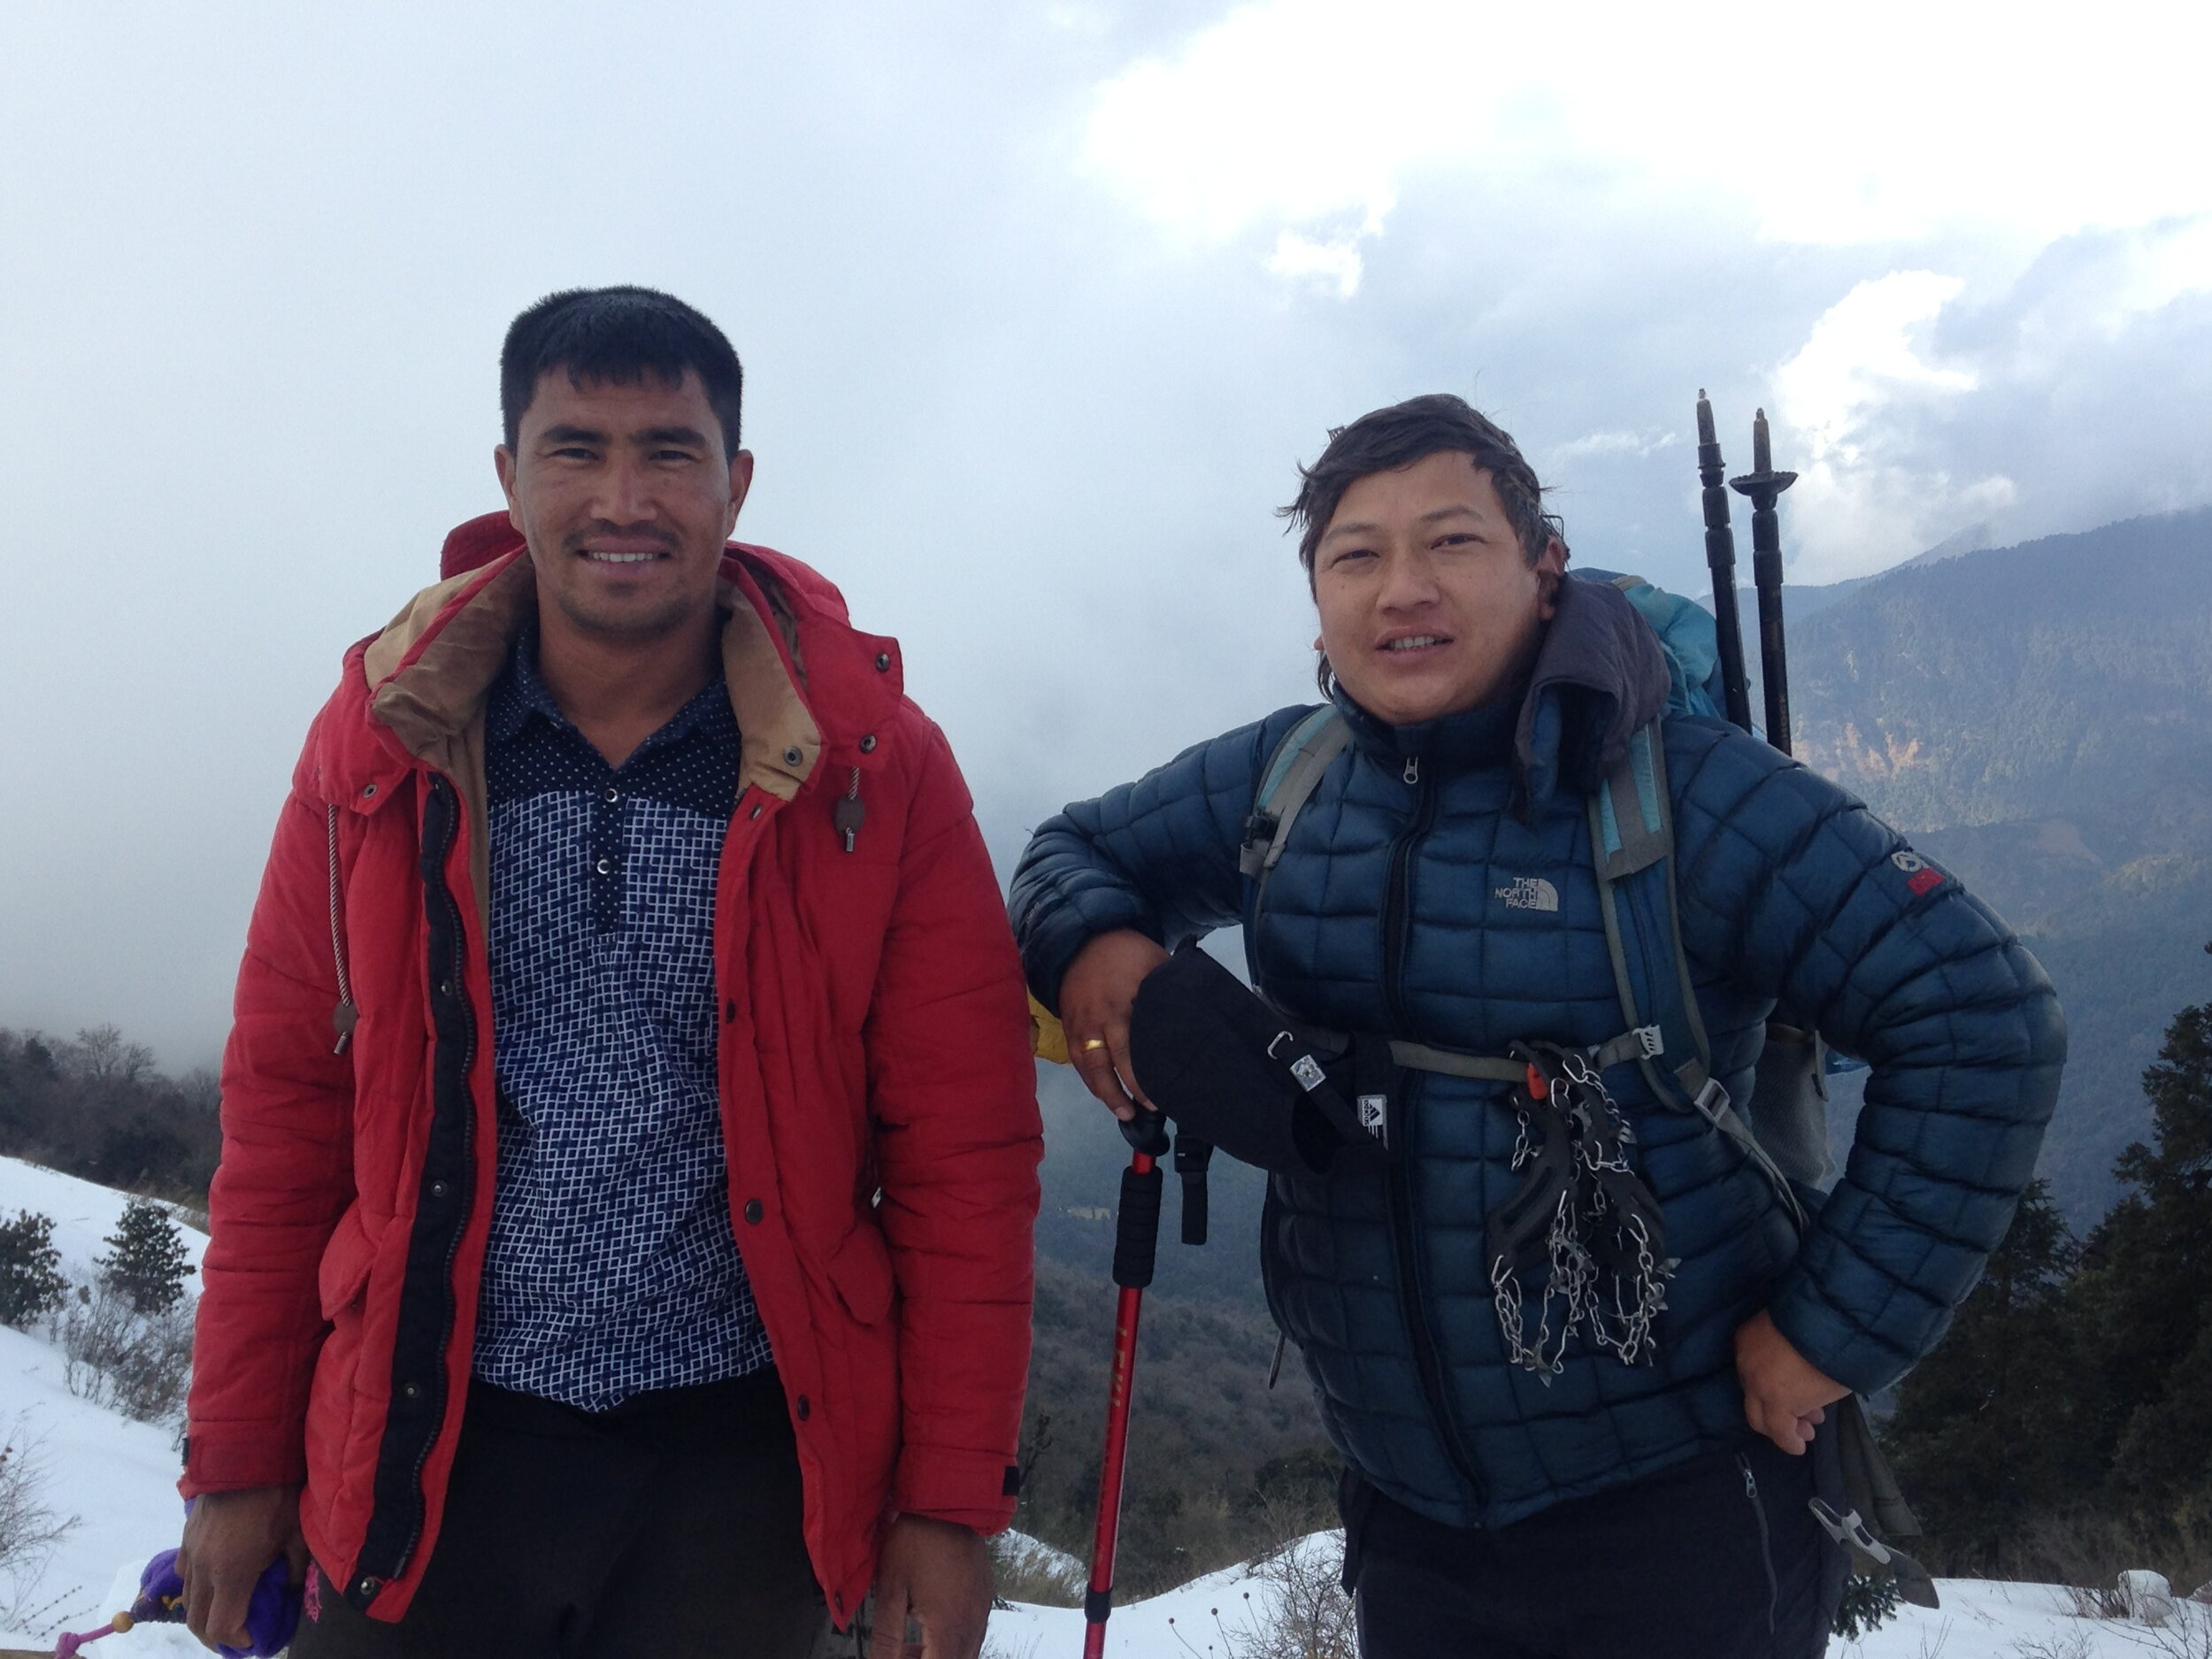 Rissi and Ram, two dear friends who will be our guides and supports